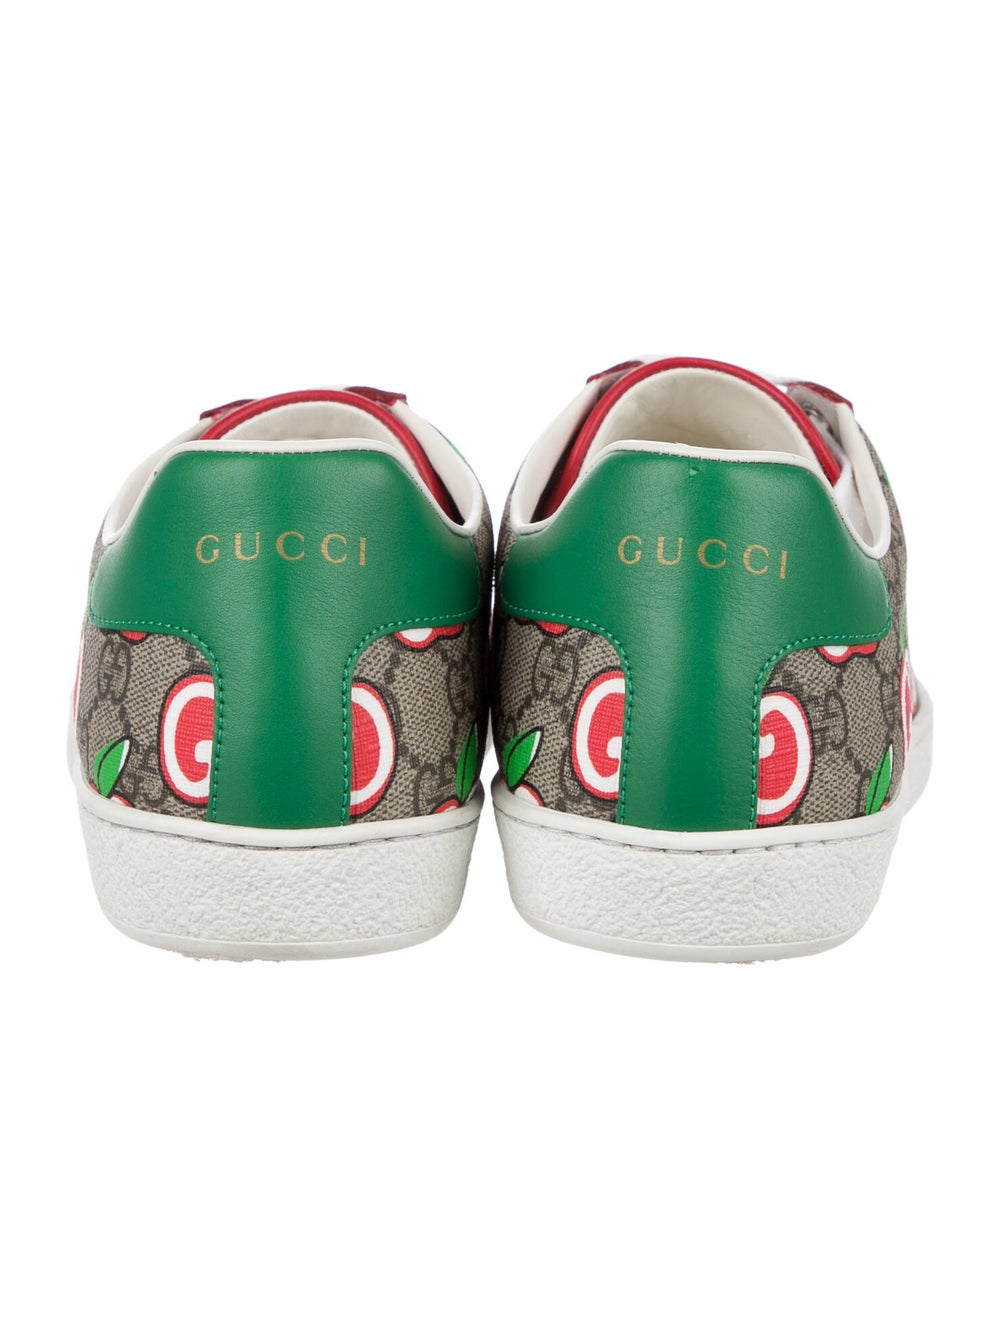 Gucci GG Apple Sneakers Sneakers - image 4